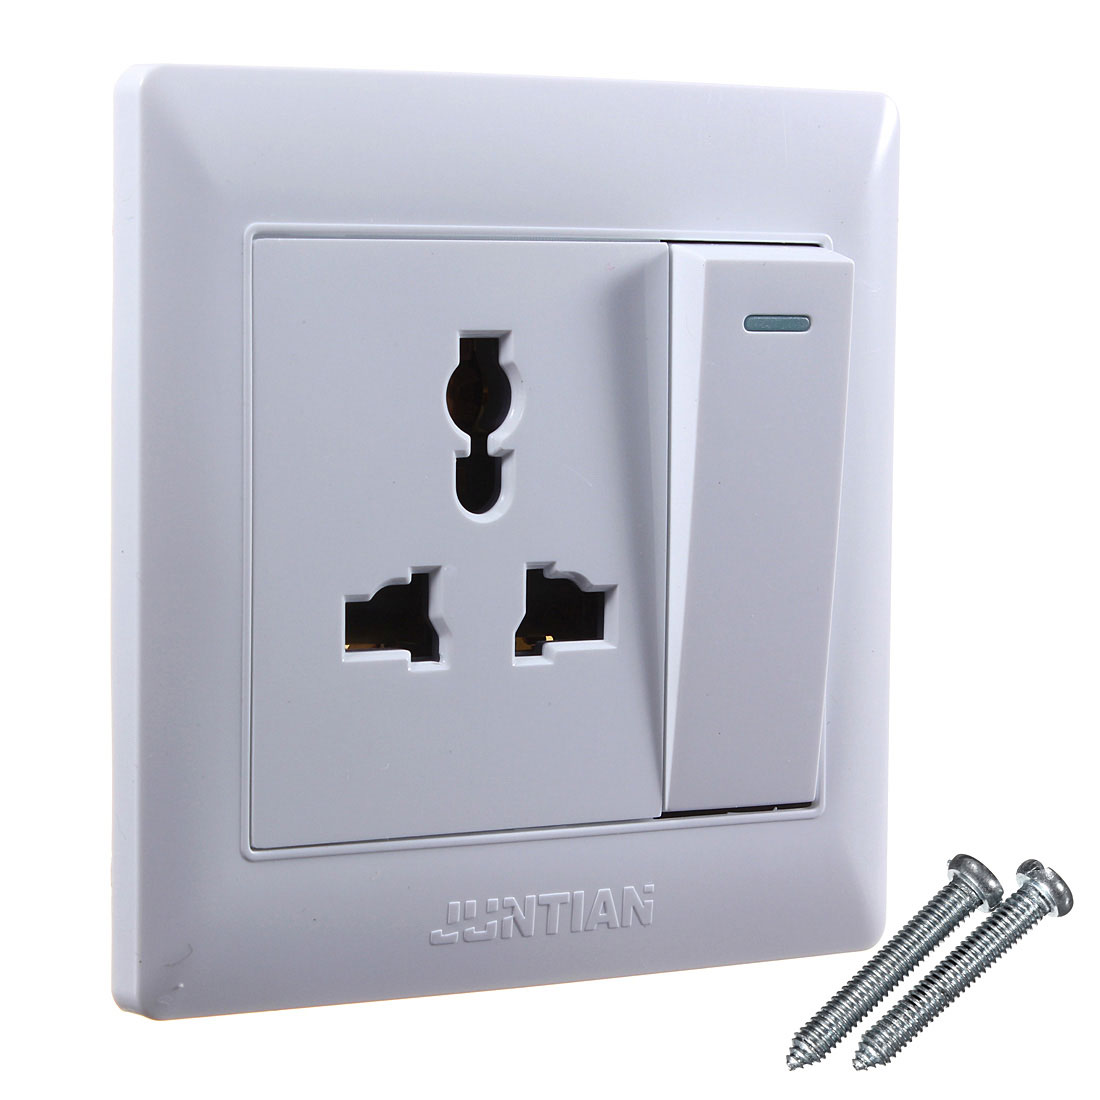 Best Promotion 10A 3 Pin Power Single Gang Wall Outlet Switch Socket Plate Panel US/EU/UK Plug Electrical Power Sockets switches(China (Mainland))